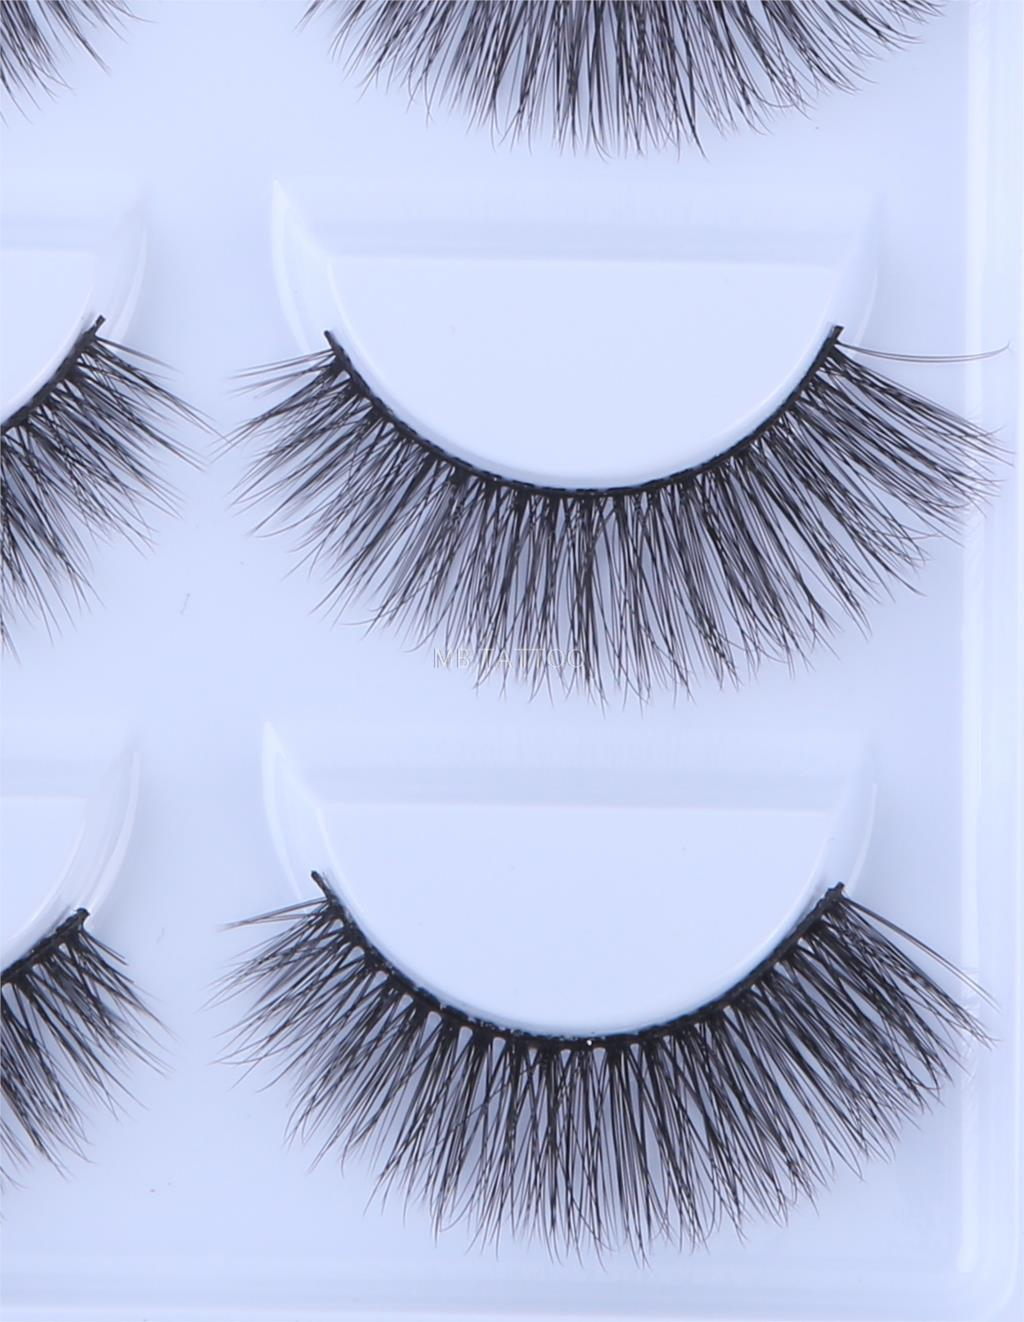 HTB1MRtgRhnaK1RjSZFtq6zC2VXau New 3D 5 Pairs Mink Eyelashes extension make up natural Long false eyelashes fake eye Lashes mink Makeup wholesale Lashes